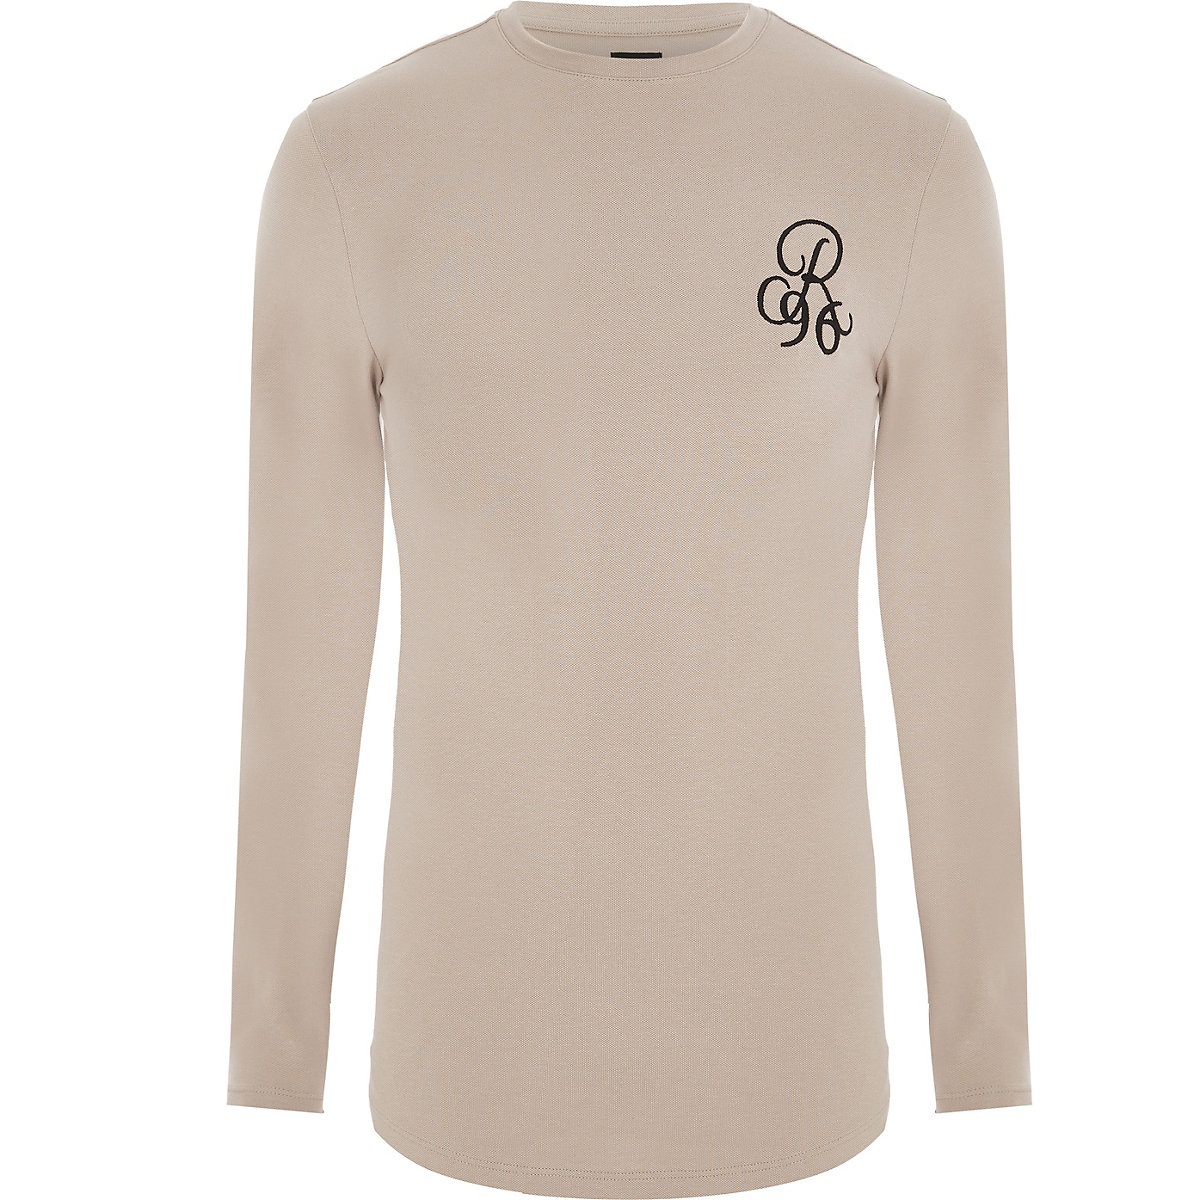 Stone muscle fit R96 long sleeve T-shirt